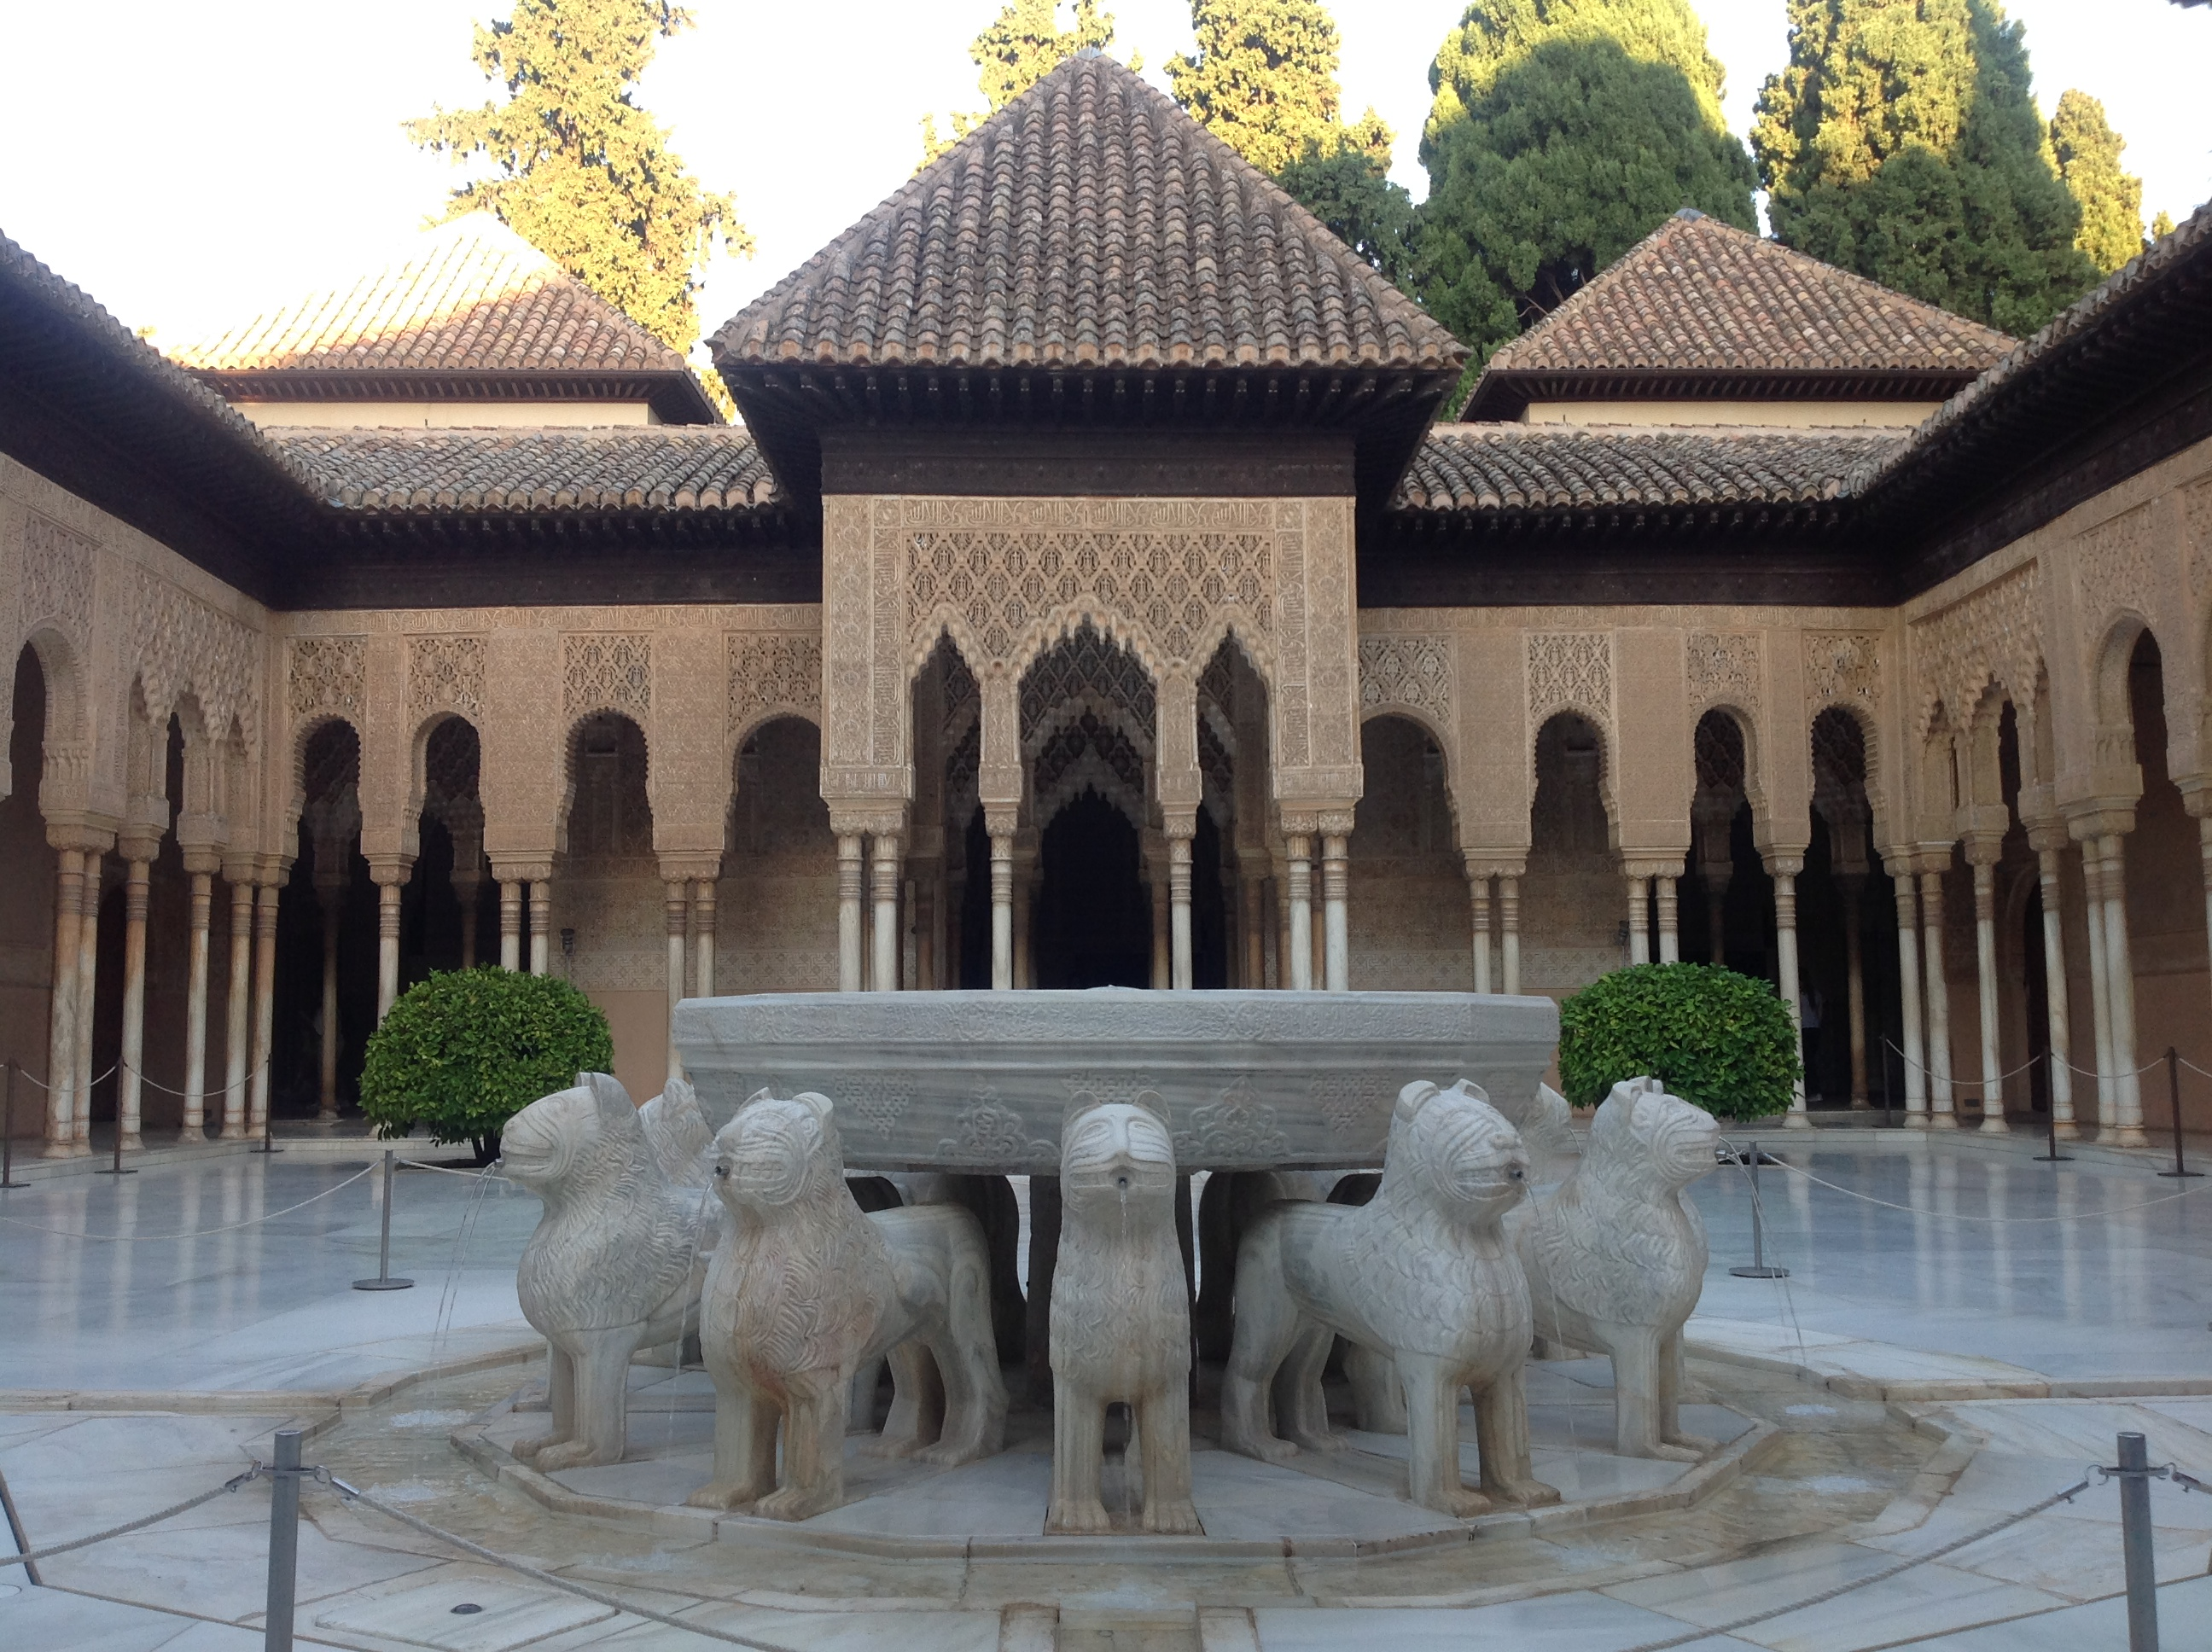 Vaizdas patio de los leones alhambra de granada spain for Patios de granada